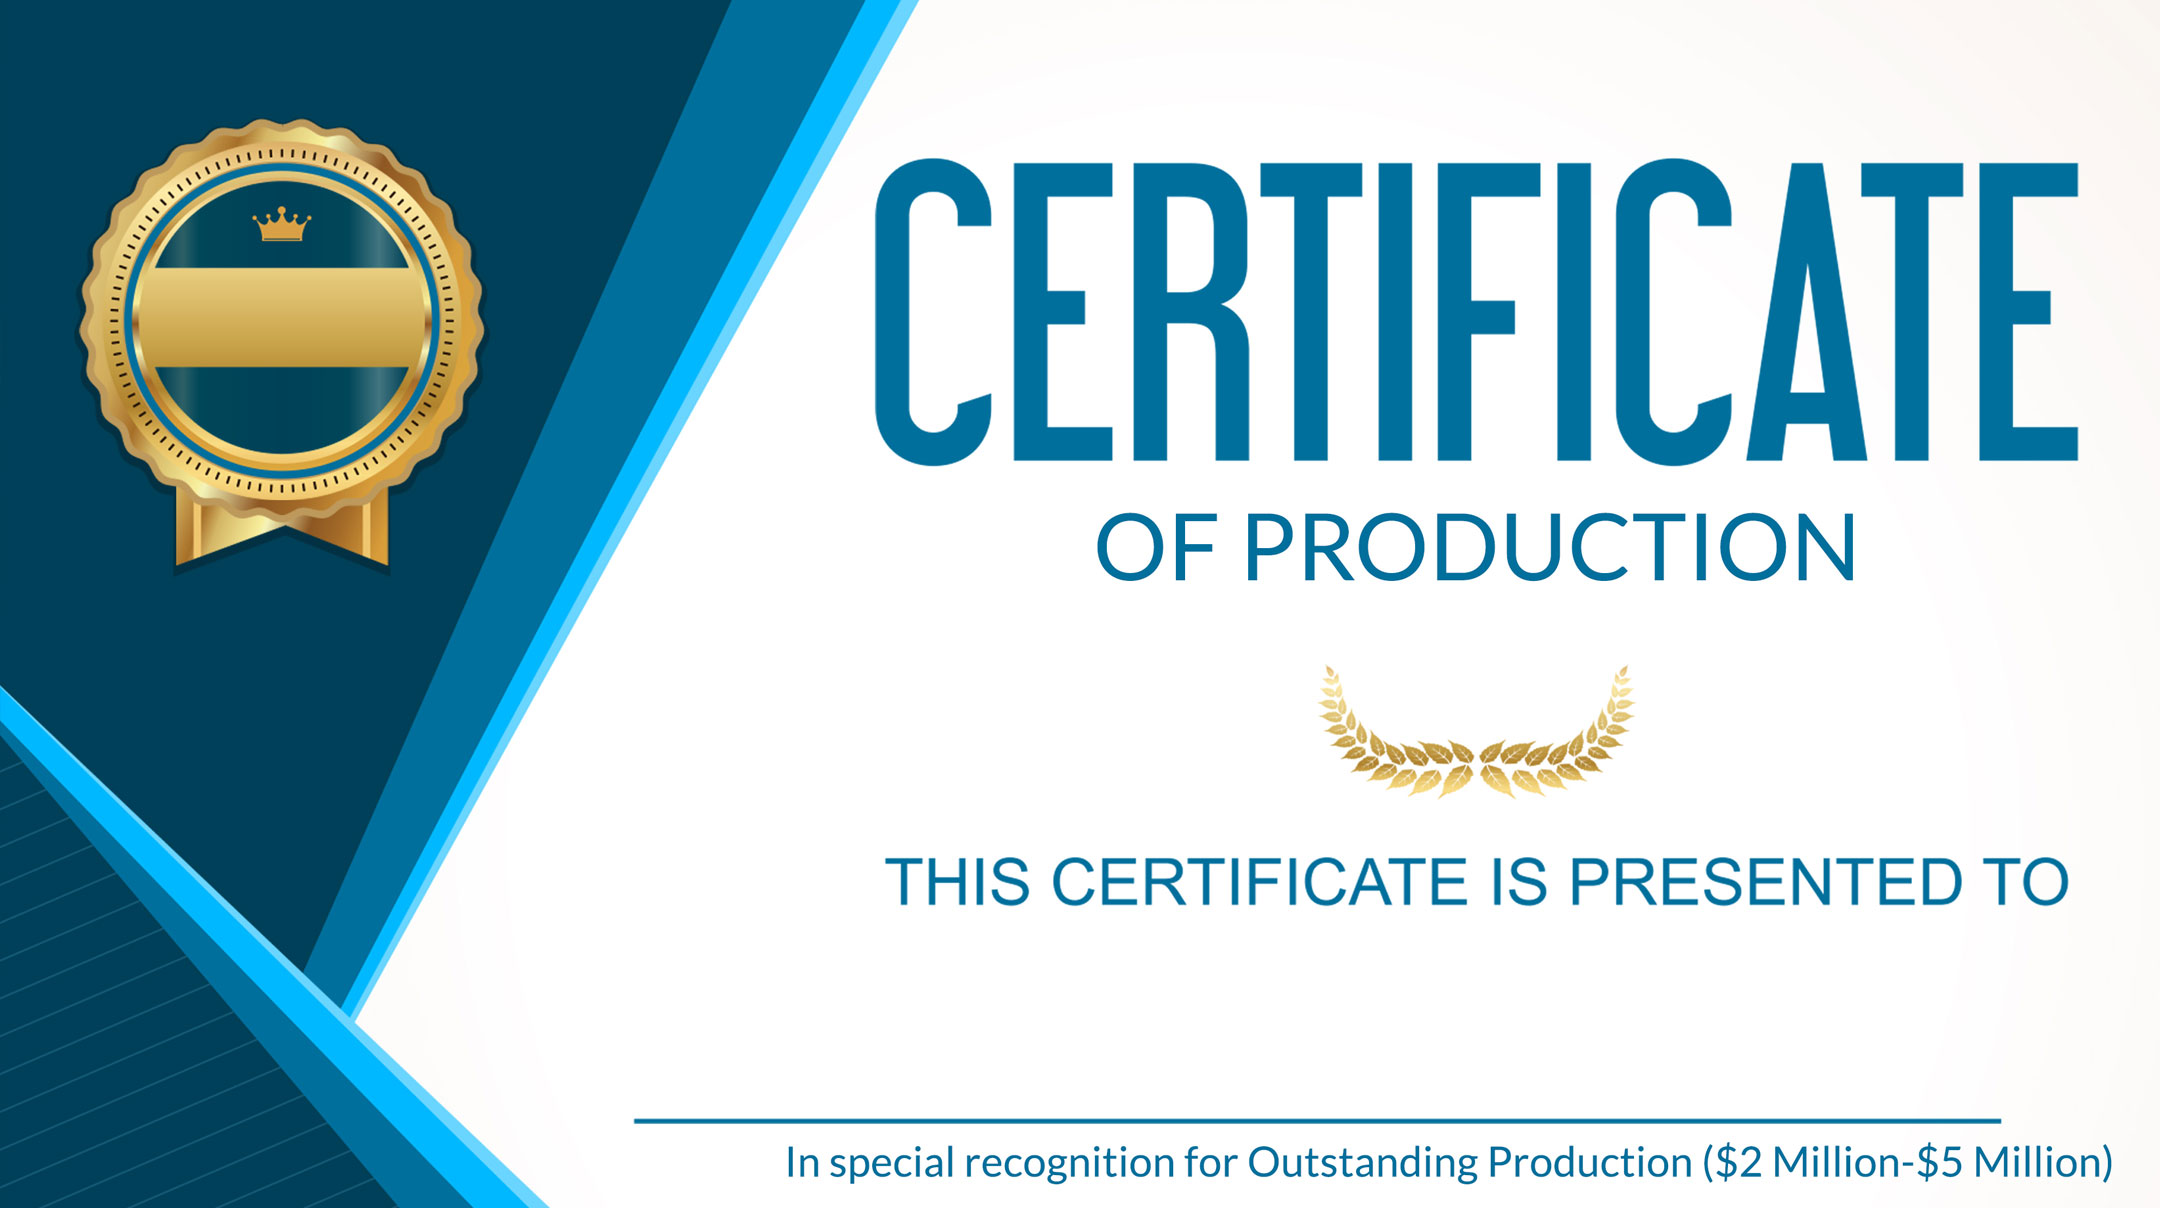 Order Your Production Certificate for 2019